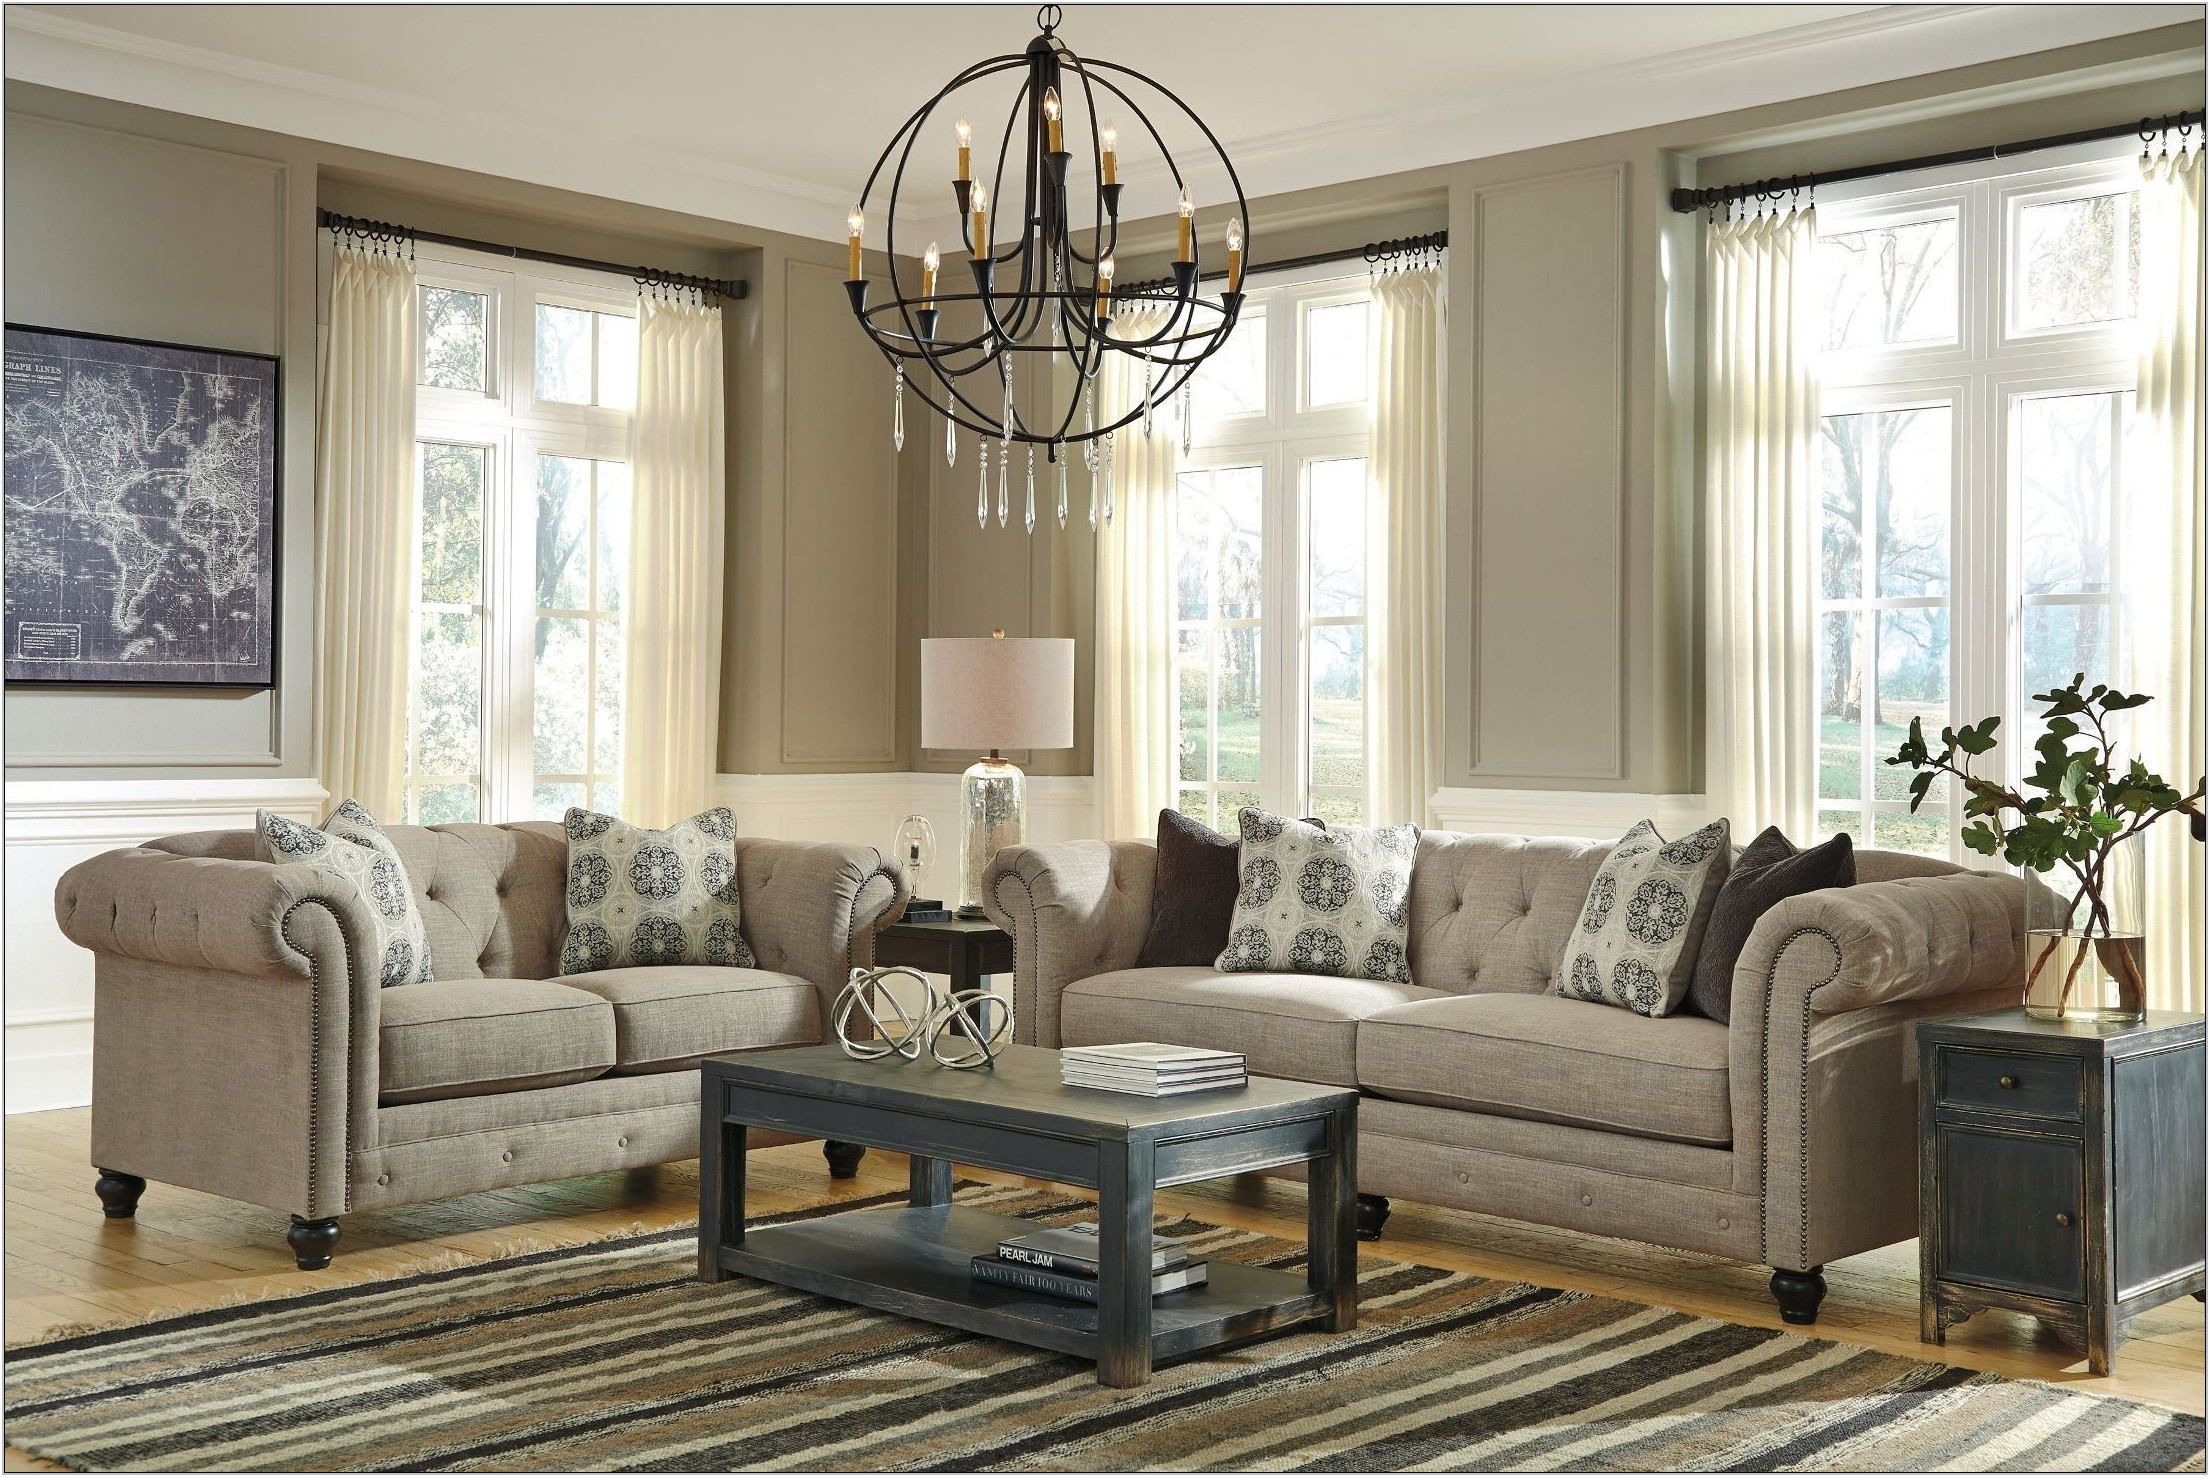 Living Room Furniture At Ashley Furniture